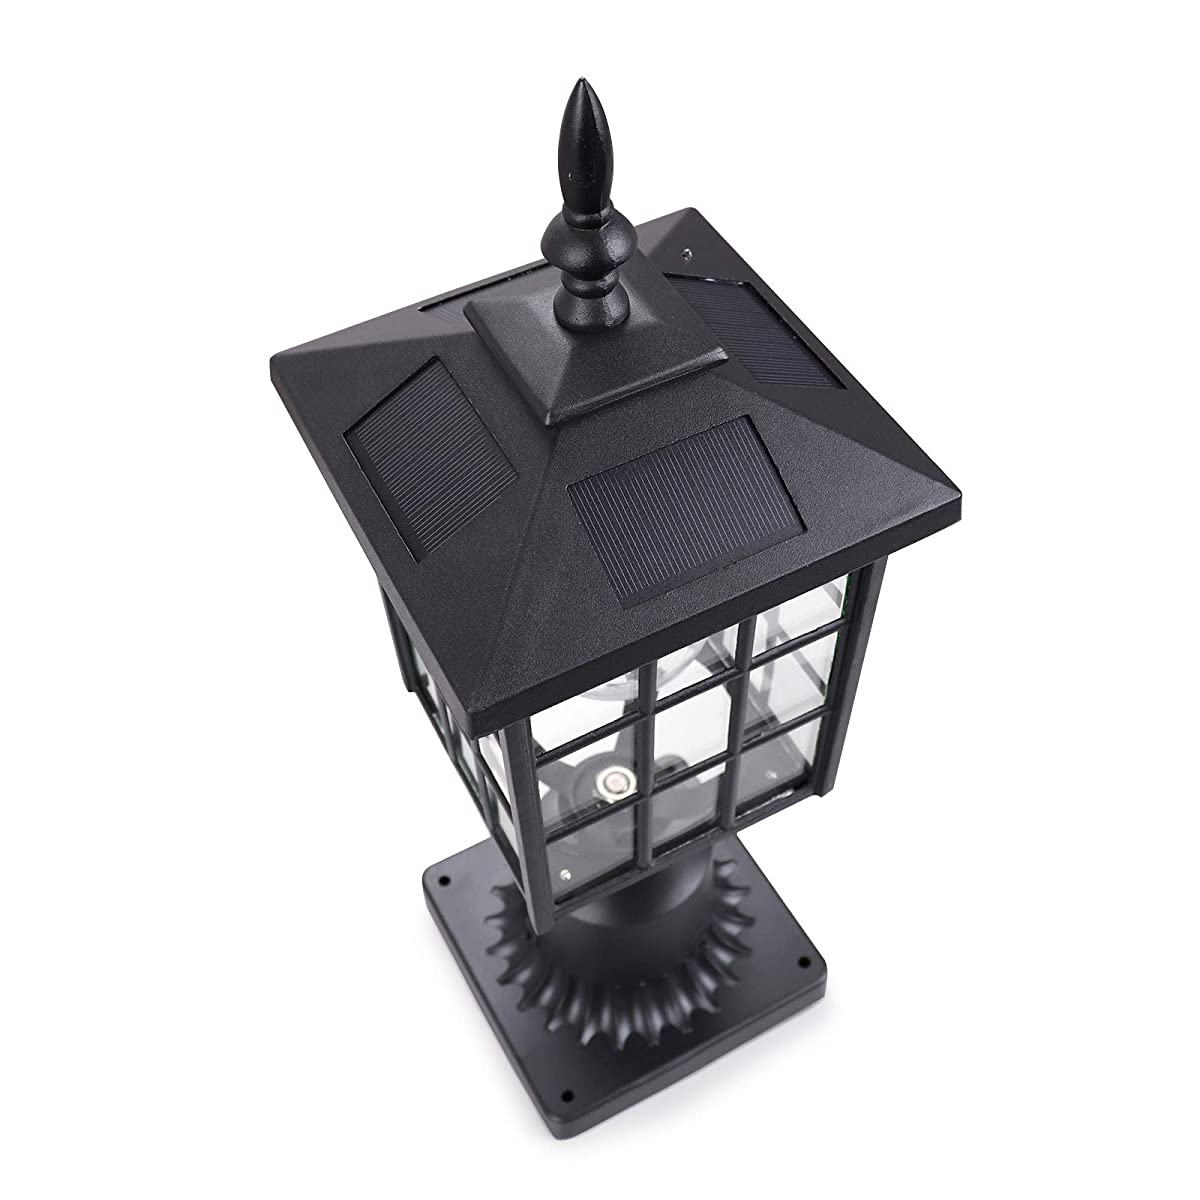 Kemeco ST4224Q LED Cast Aluminum Solar Post Light Fixture with 3-Inch Fitter Base for Outdoor Garden Post Pole Mount